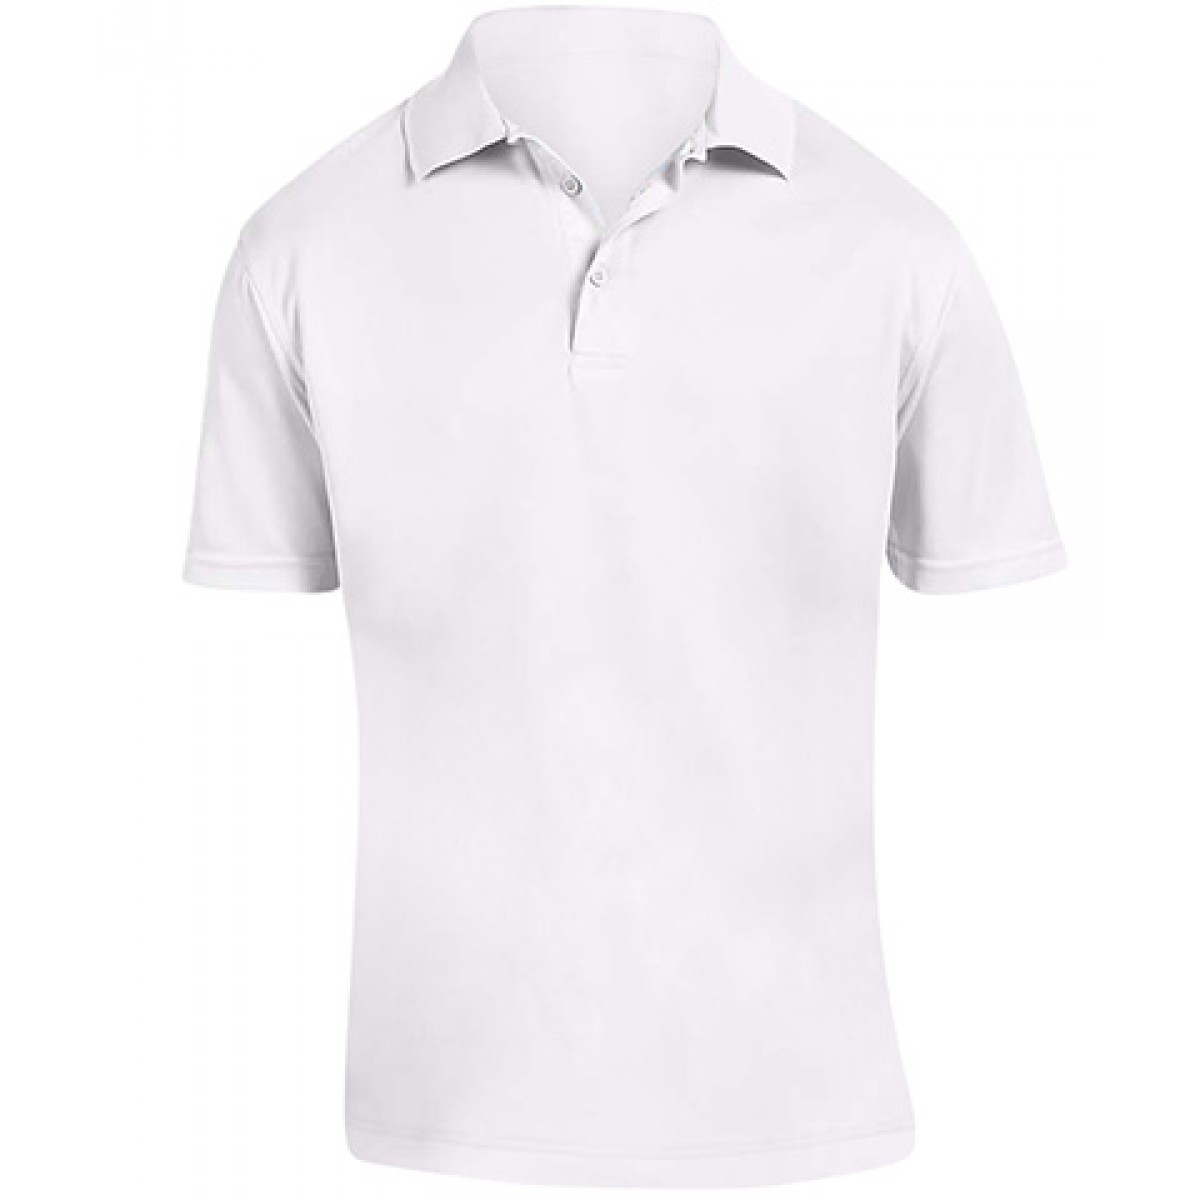 Men's 4 oz. Polytech Polo-White-L